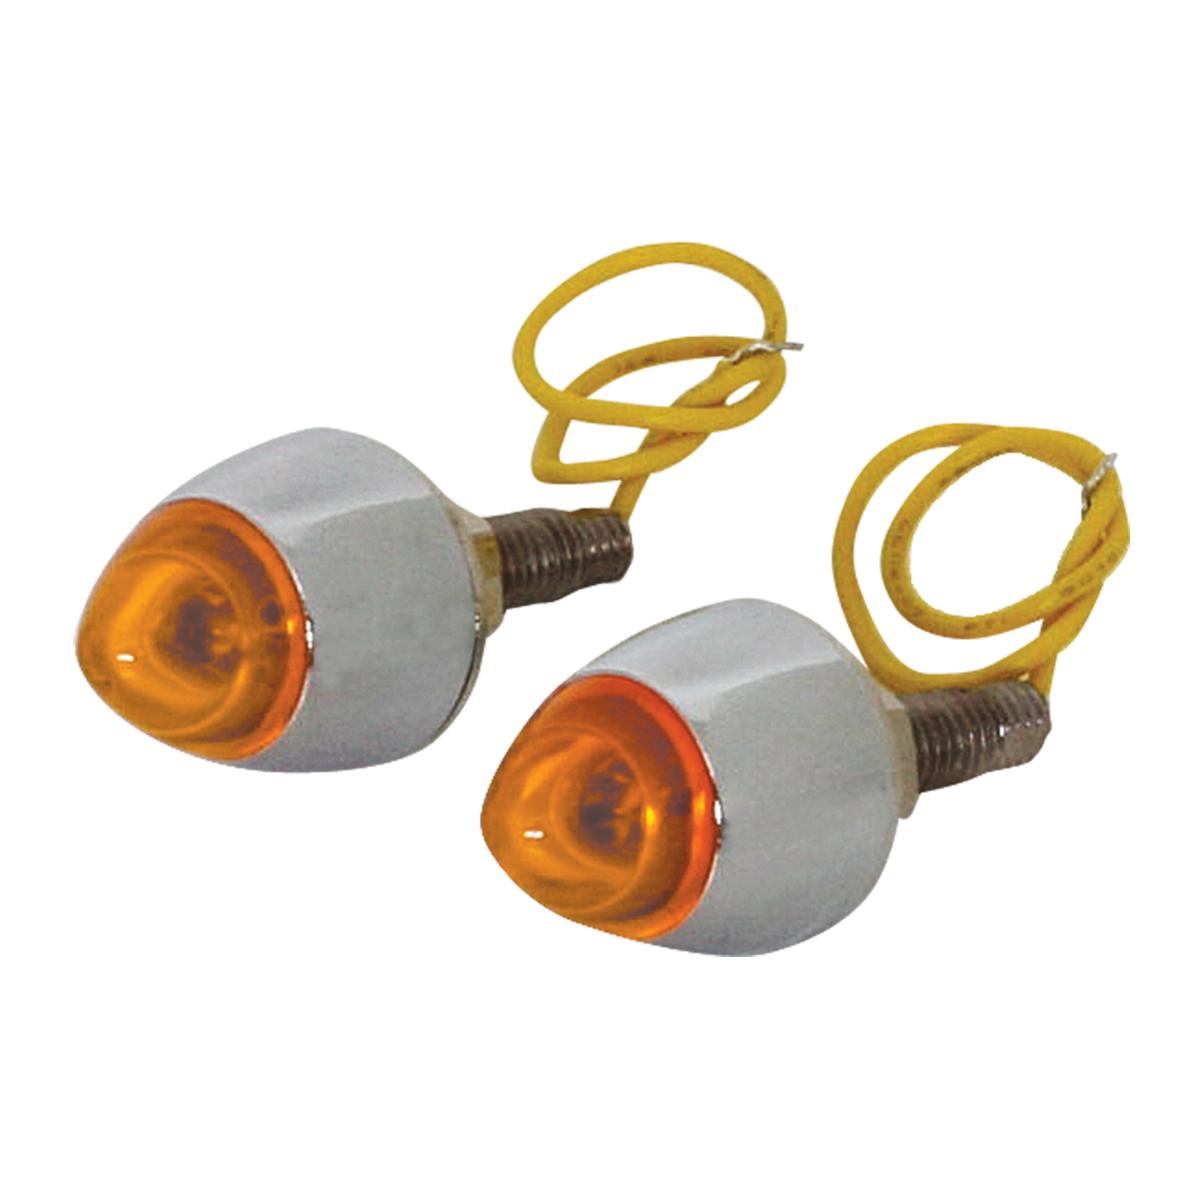 LED Lighted Bullet Fastener Set of 2 - Amber